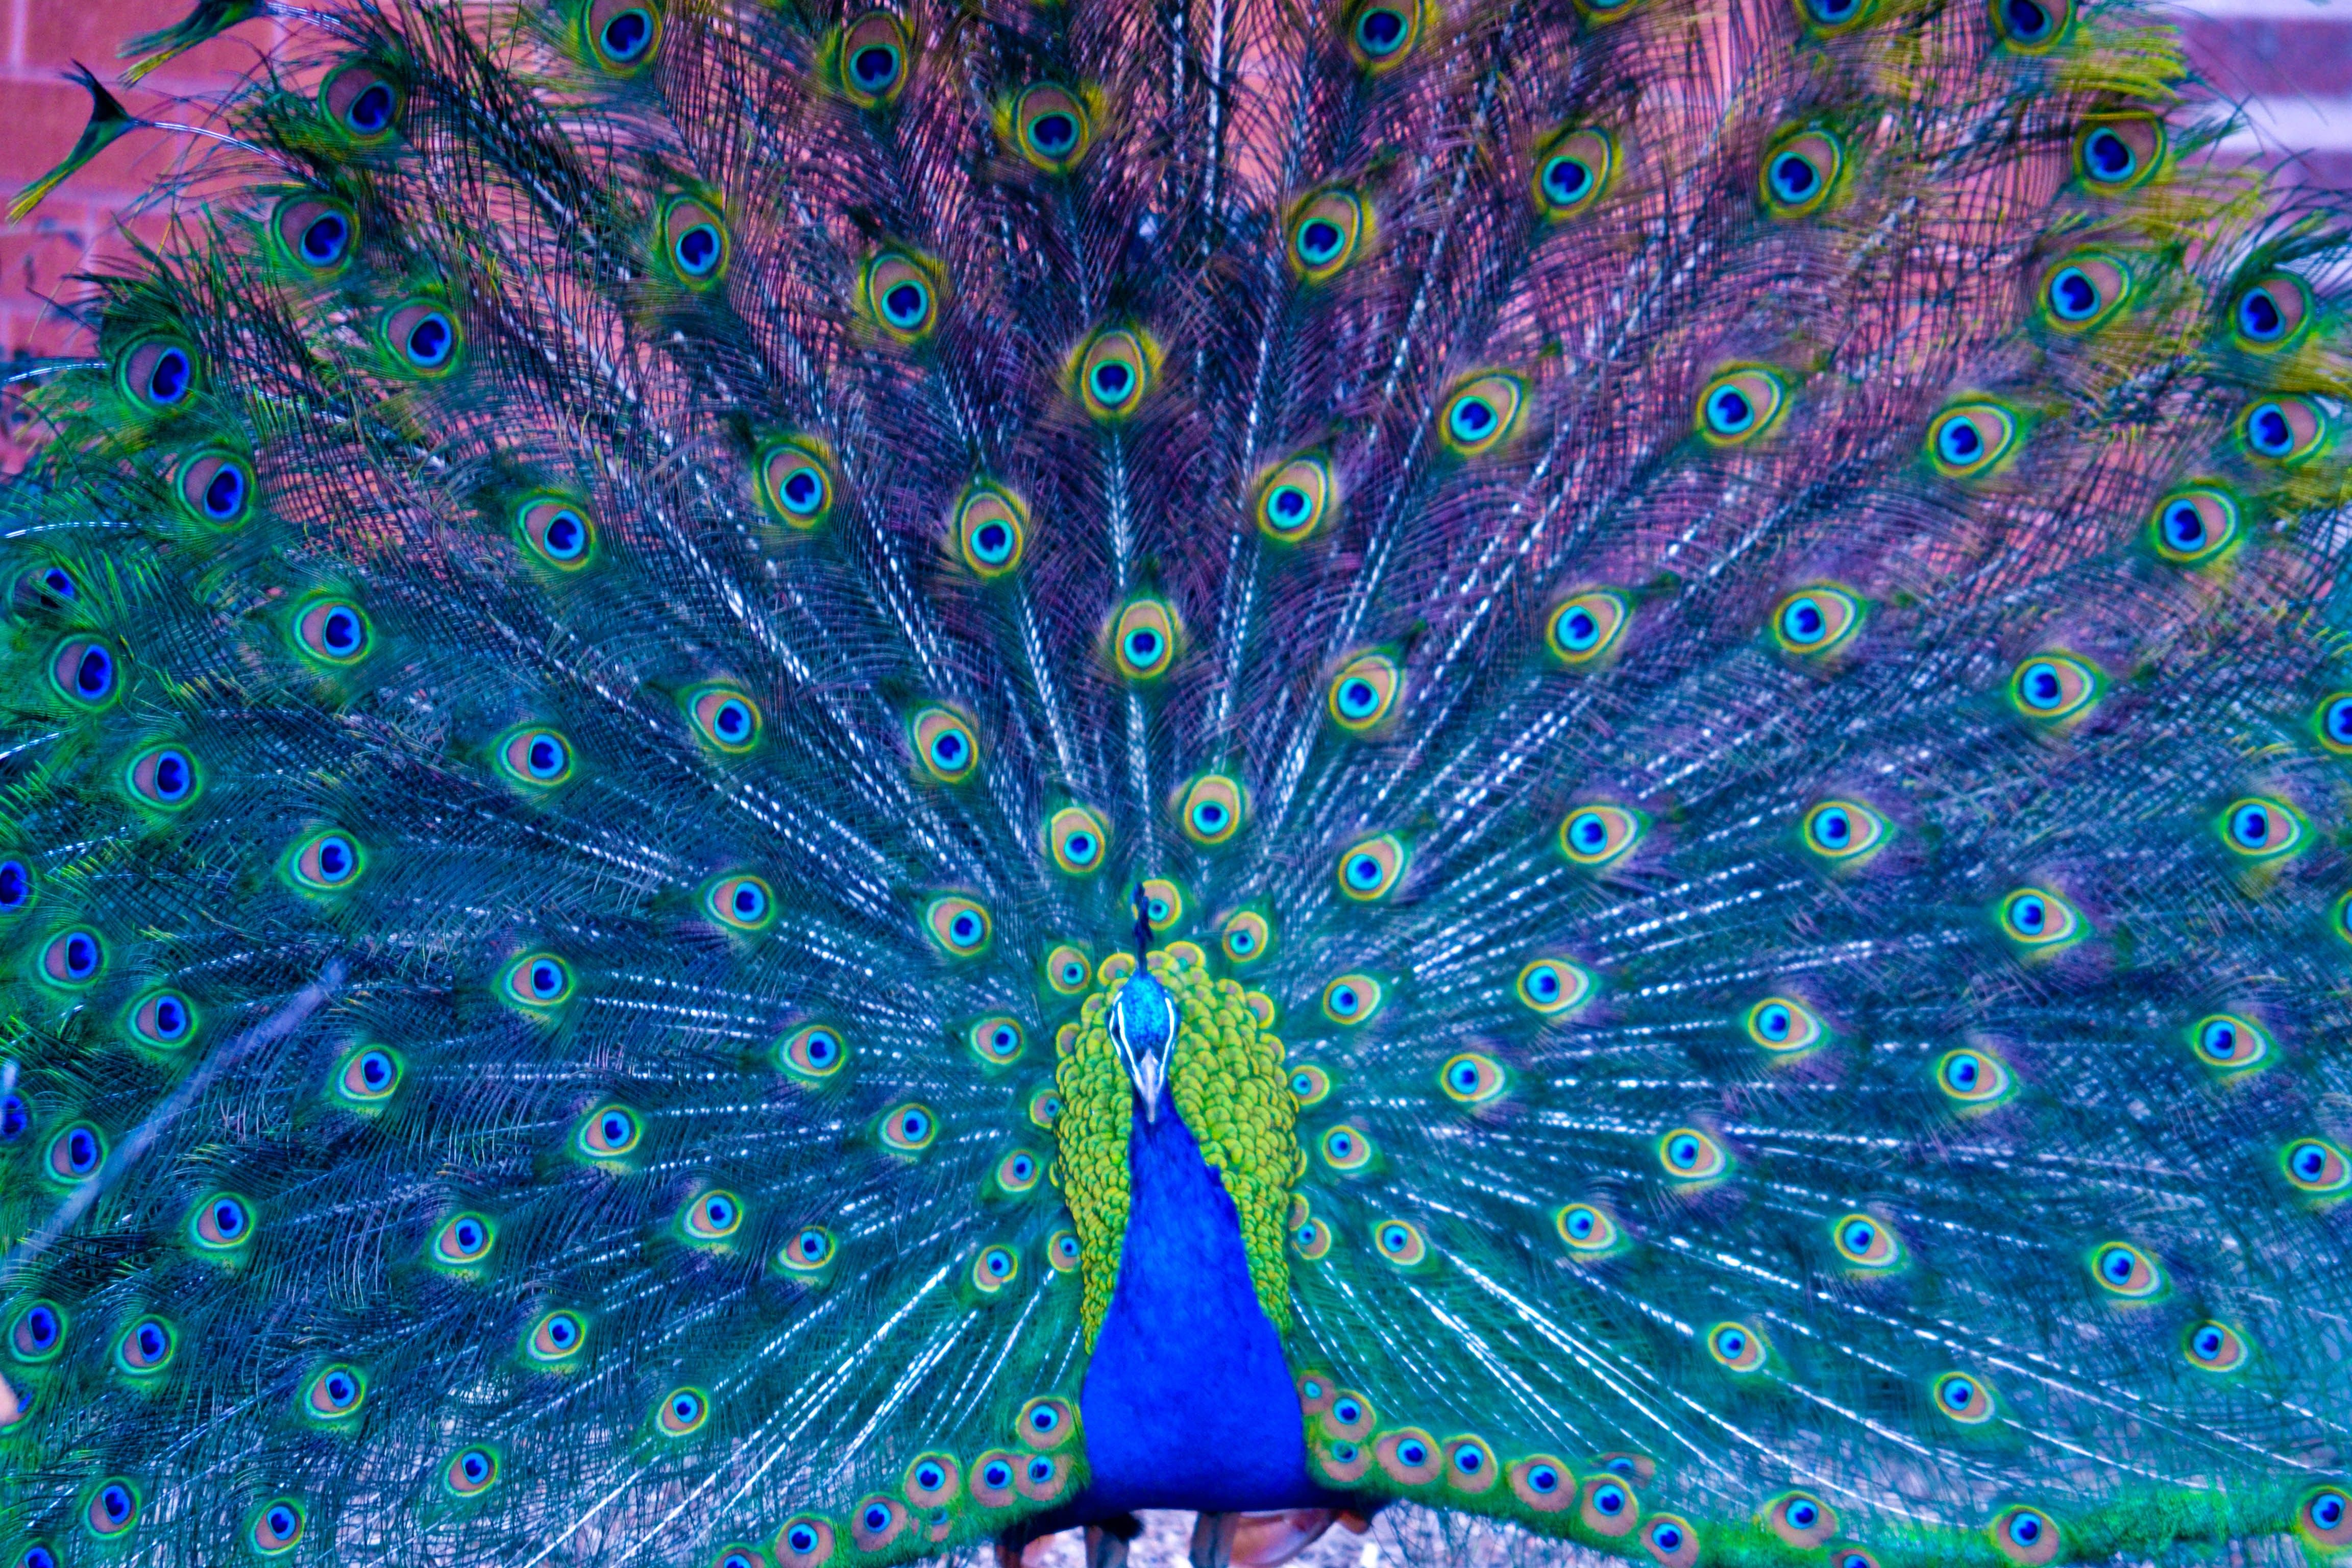 Hd Peacock Wallpaper Wallpapers Backgrounds Images Art Photos Peacock Pictures Animal Wallpaper Peacock Wallpaper